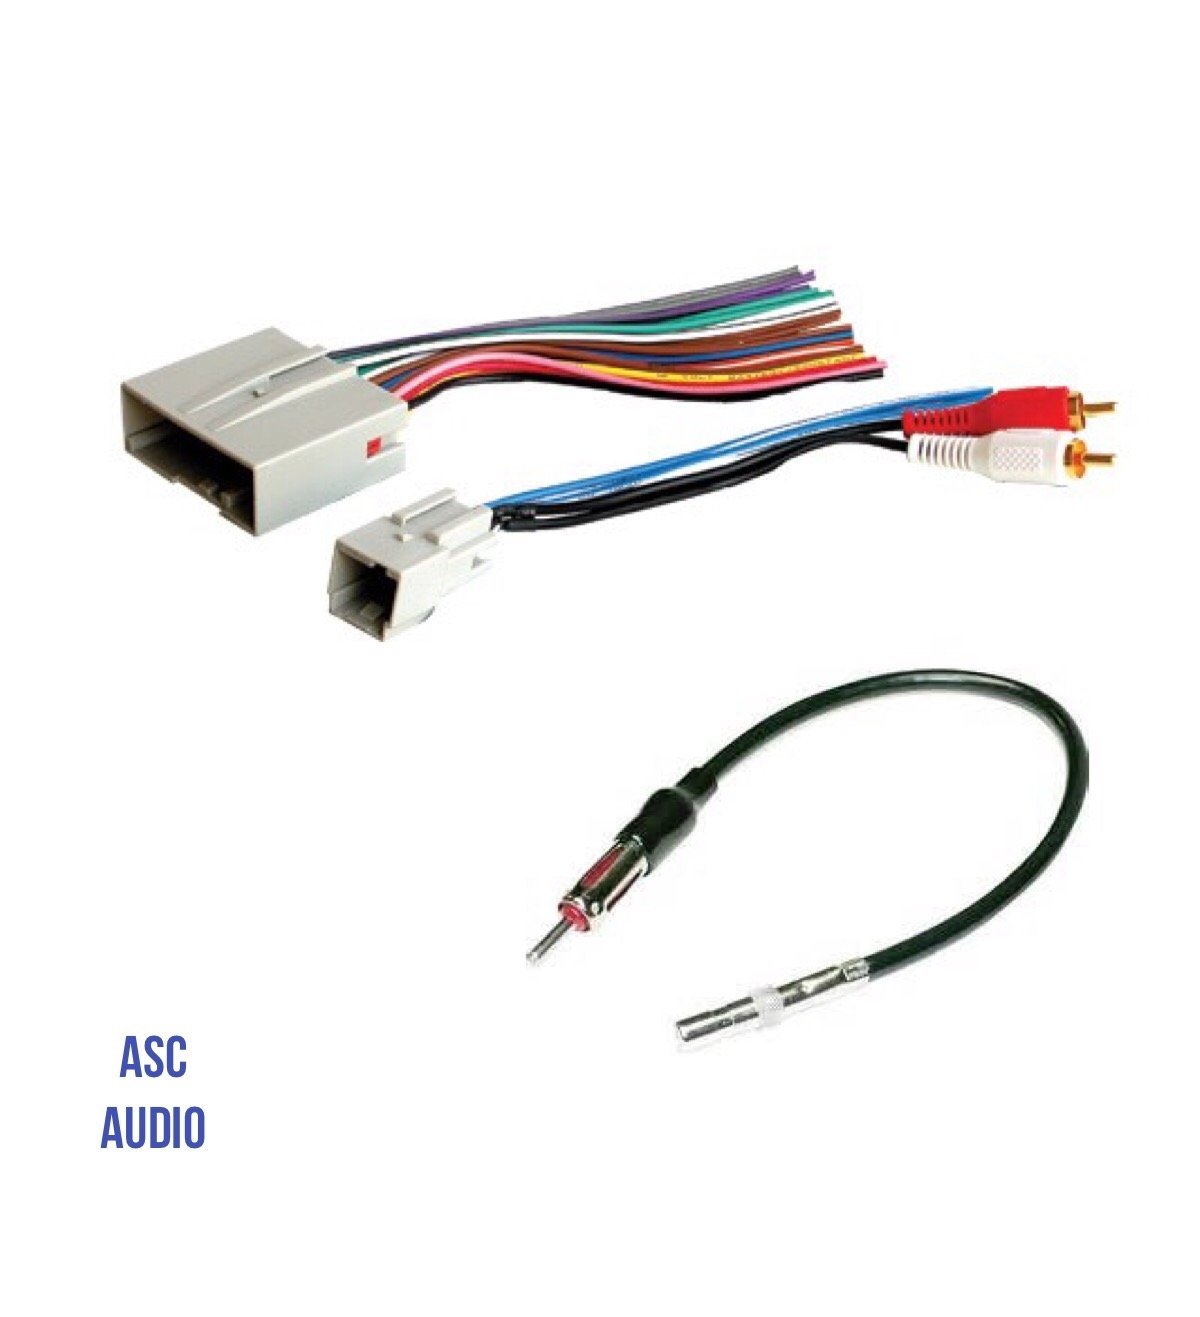 Asc Audio Car Stereo Wire Harness And Antenna Adapter To 03 Co Cd Player Wiring Diagram Install An Aftermarket Radio For Some Ford Lincoln Mazda Mercury Vehicles Compatible